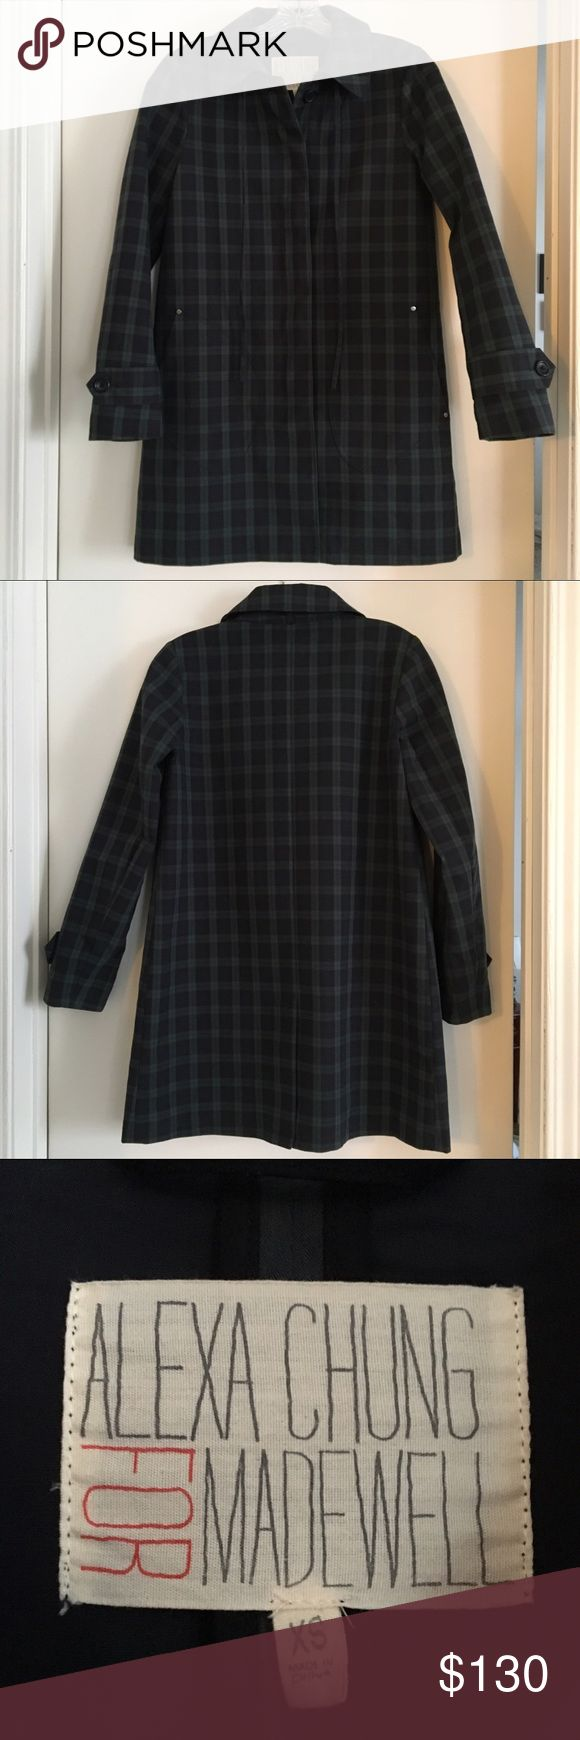 Alexa Chung for Madewell Shrimp Coat Alexa Chung for Madewell Shrimp Coat, size XS, in the Navy Shadow color. The coat is 100% cotton. Used, but in perfect condition. The coat is a very thick shell that makes for an excellent wind breaker or rain jacket. I'm only parting with it because it no longer fits me, and will gladly trade for the same coat in a Small, or other items from the Alexa Chung for Madewell collaboration. Madewell Jackets & Coats